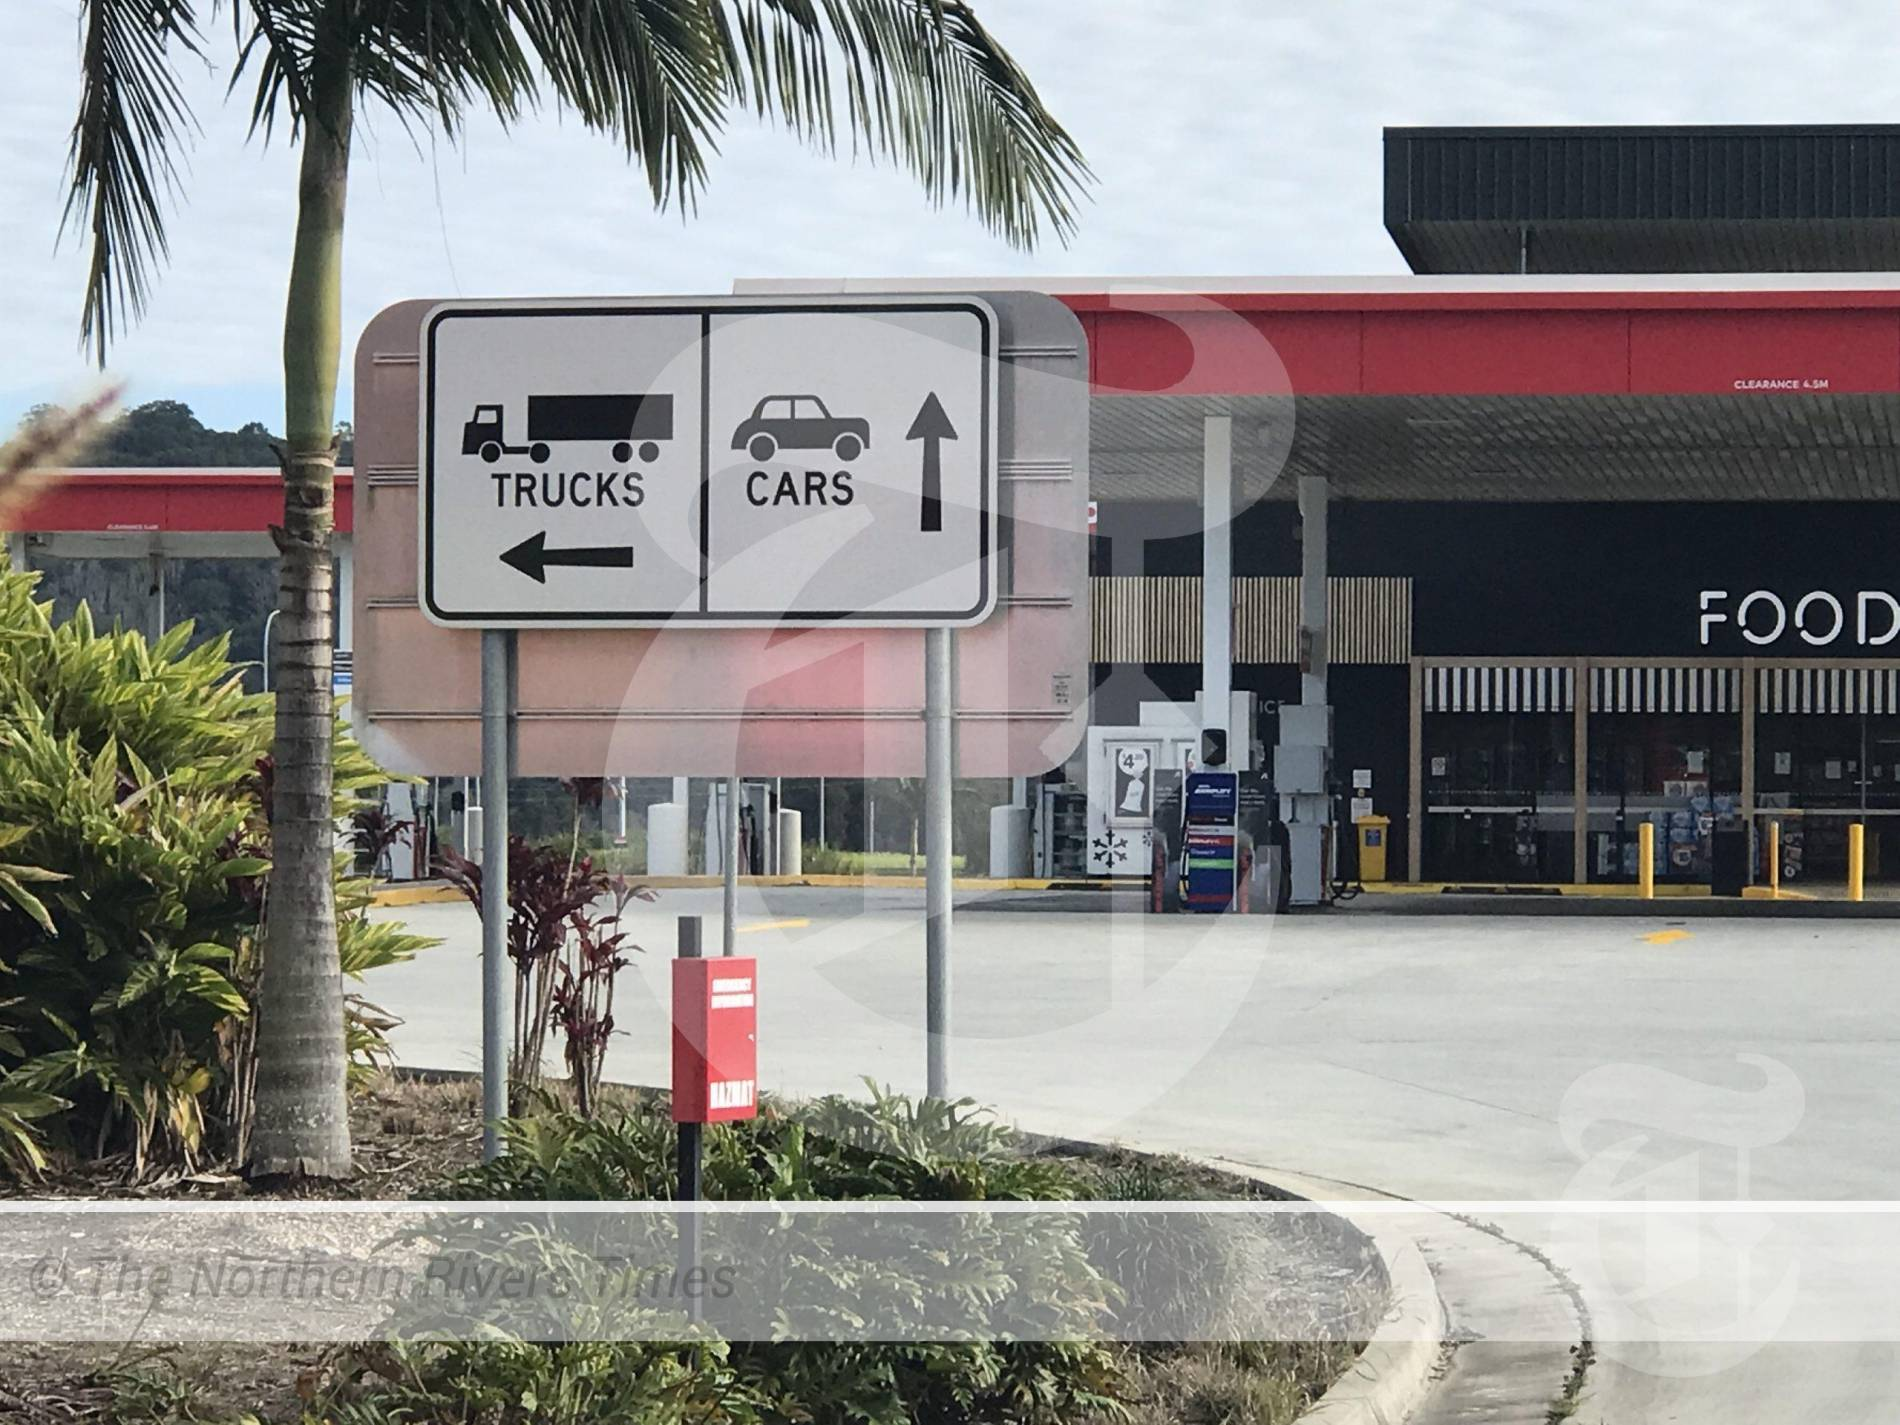 two COVID-19 positive cases detected at the Ampol Northbound Service Station at Chinderah last week were not truck drivers as widely assumed